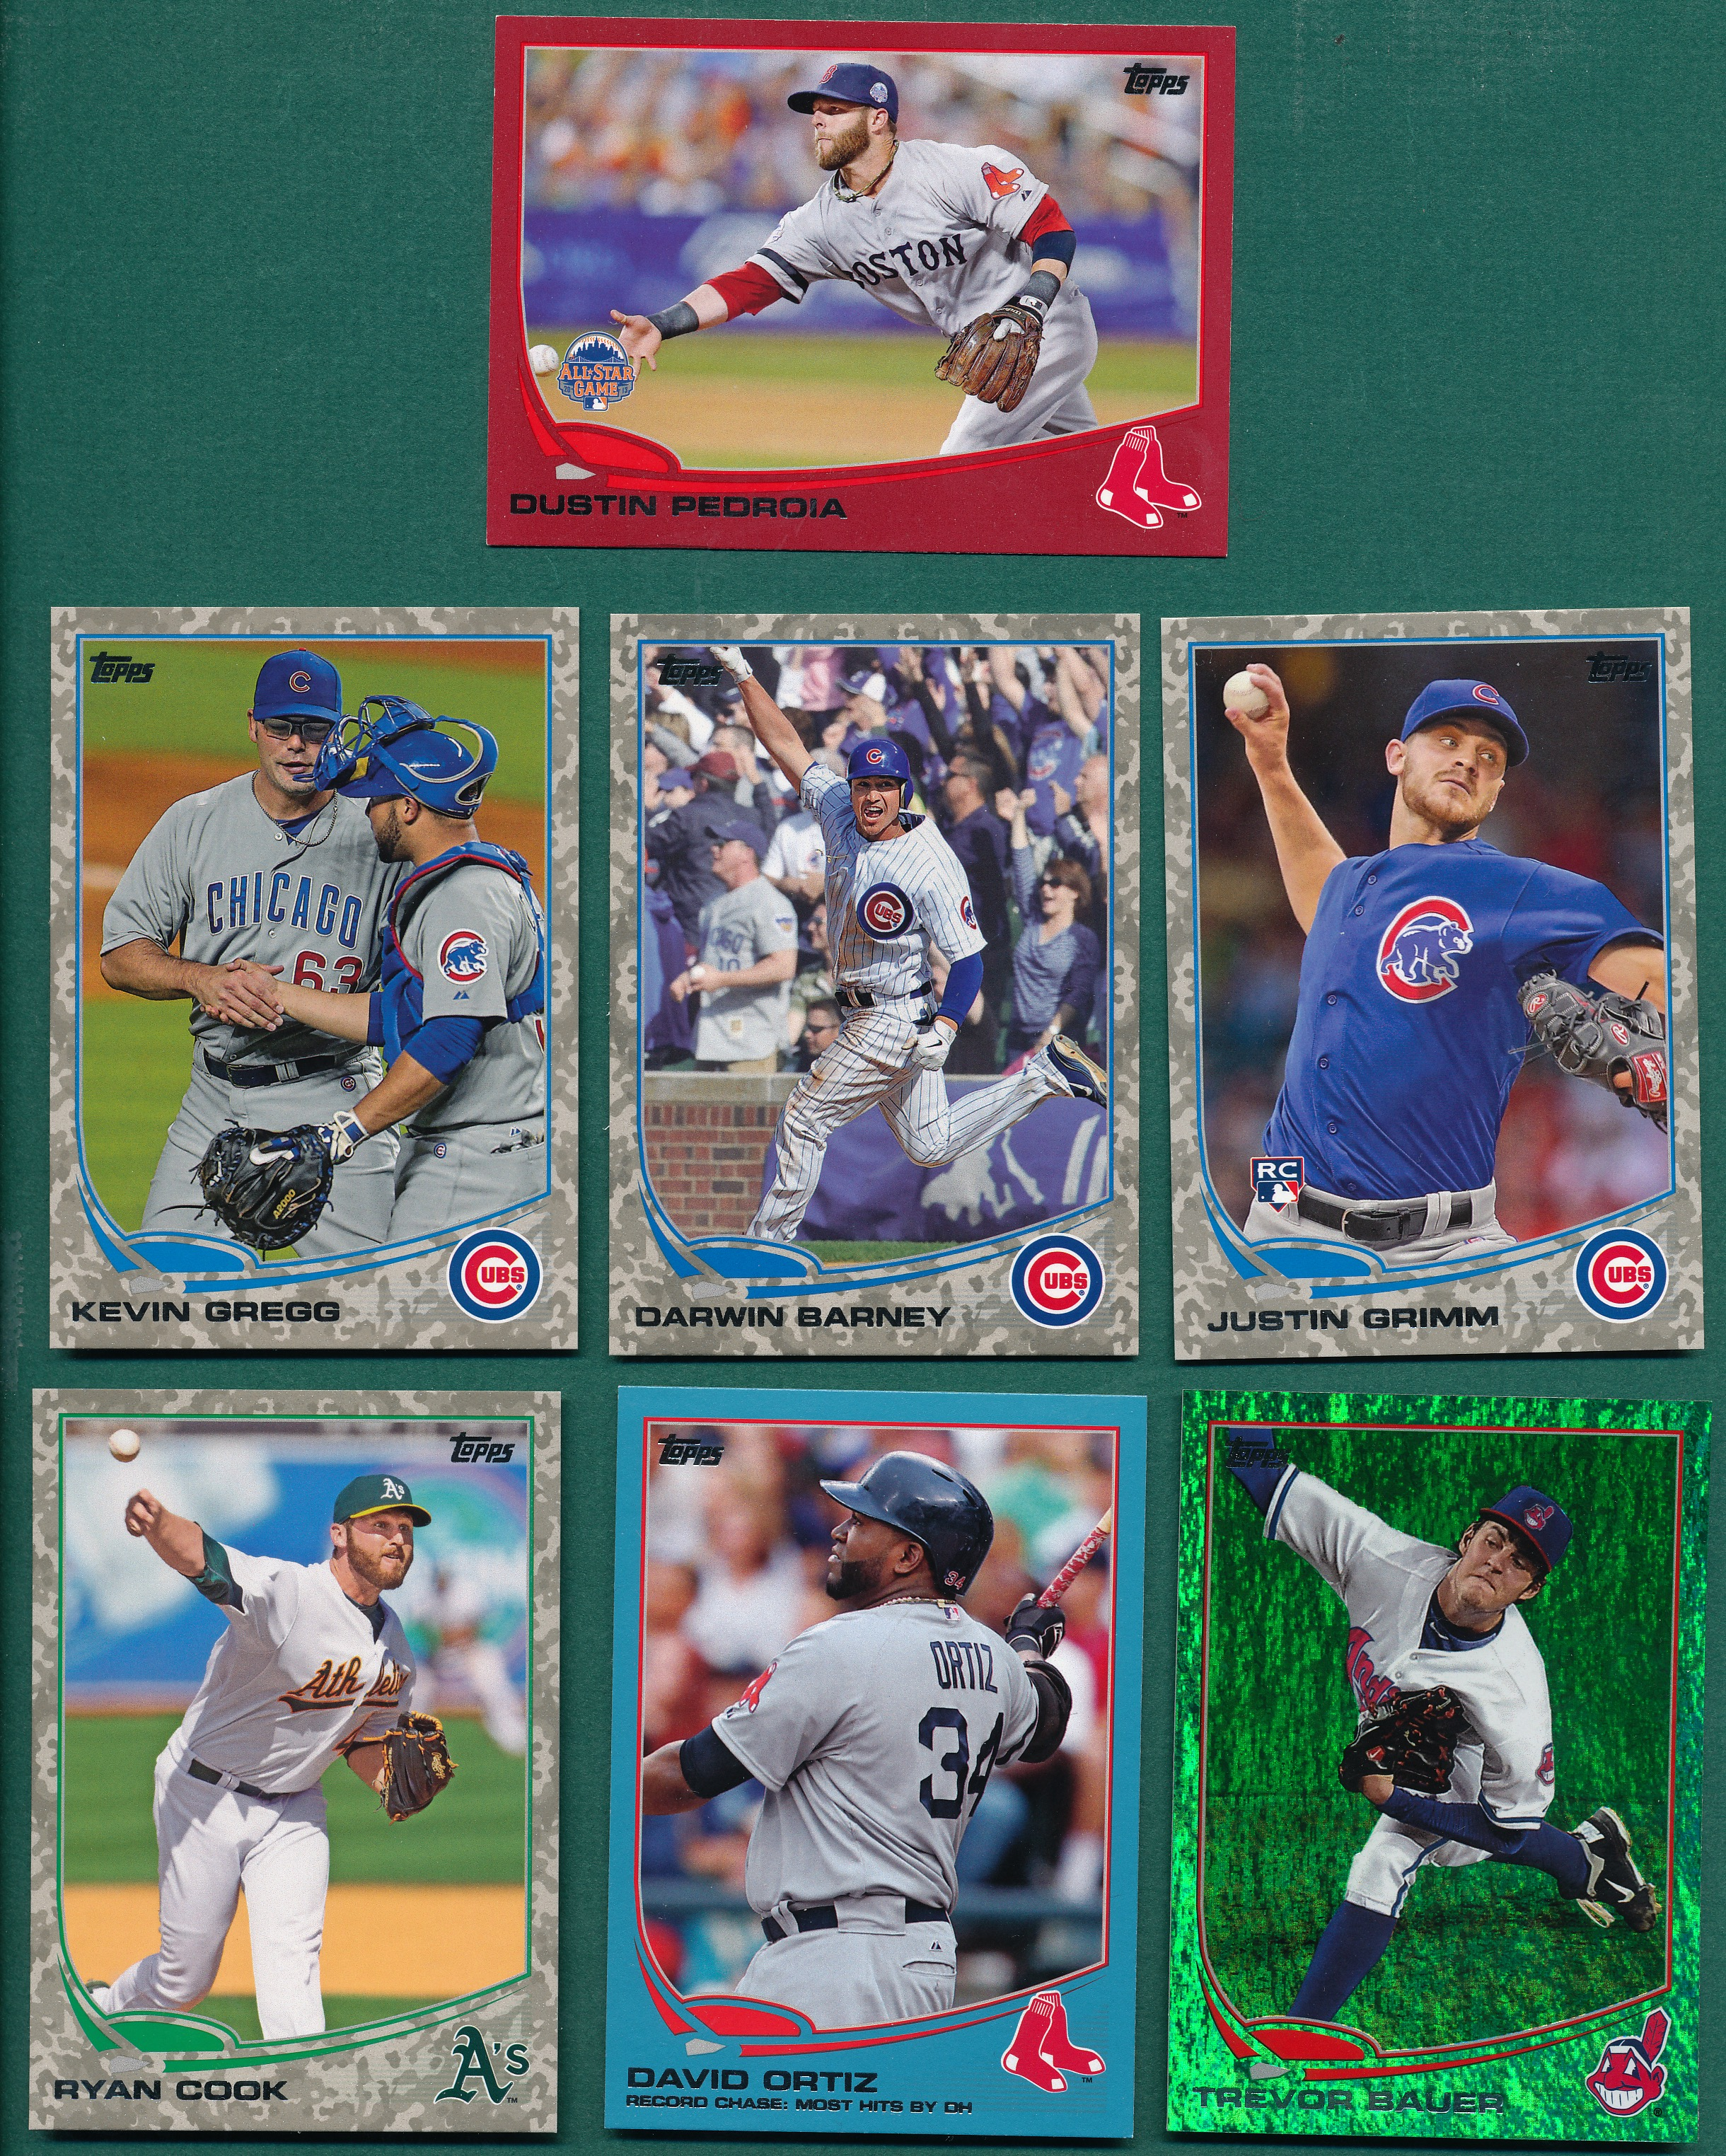 2013 Topps Update Colored Parallels, Walmart